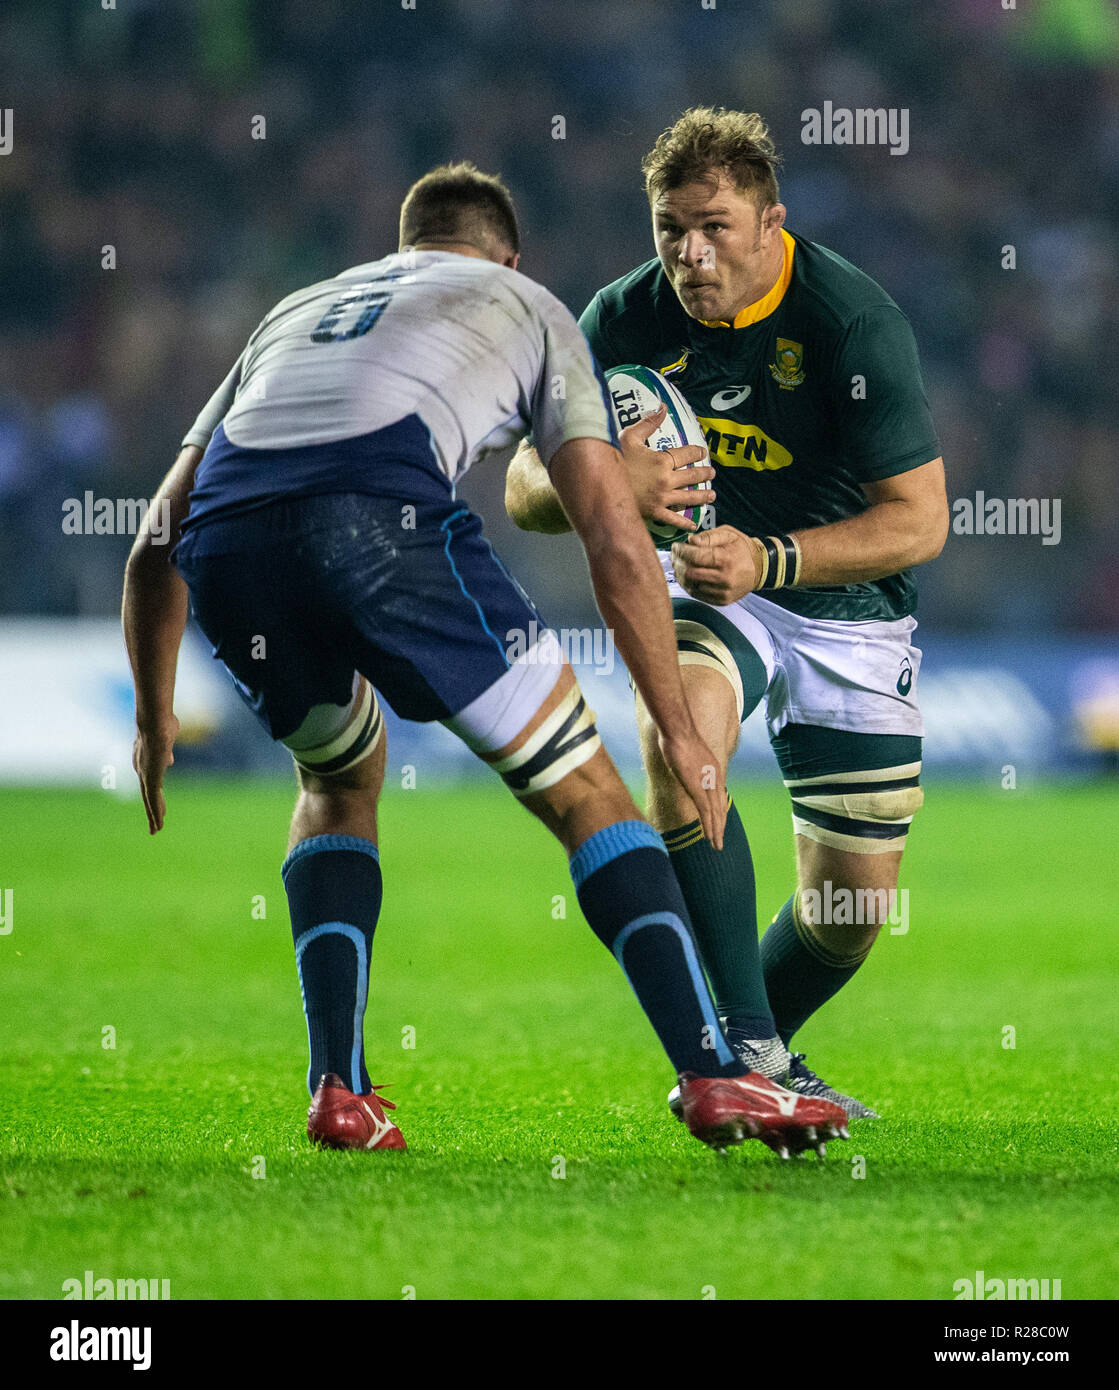 Sports Rugby Live: Duane Vermeulen Stock Photos & Duane Vermeulen Stock